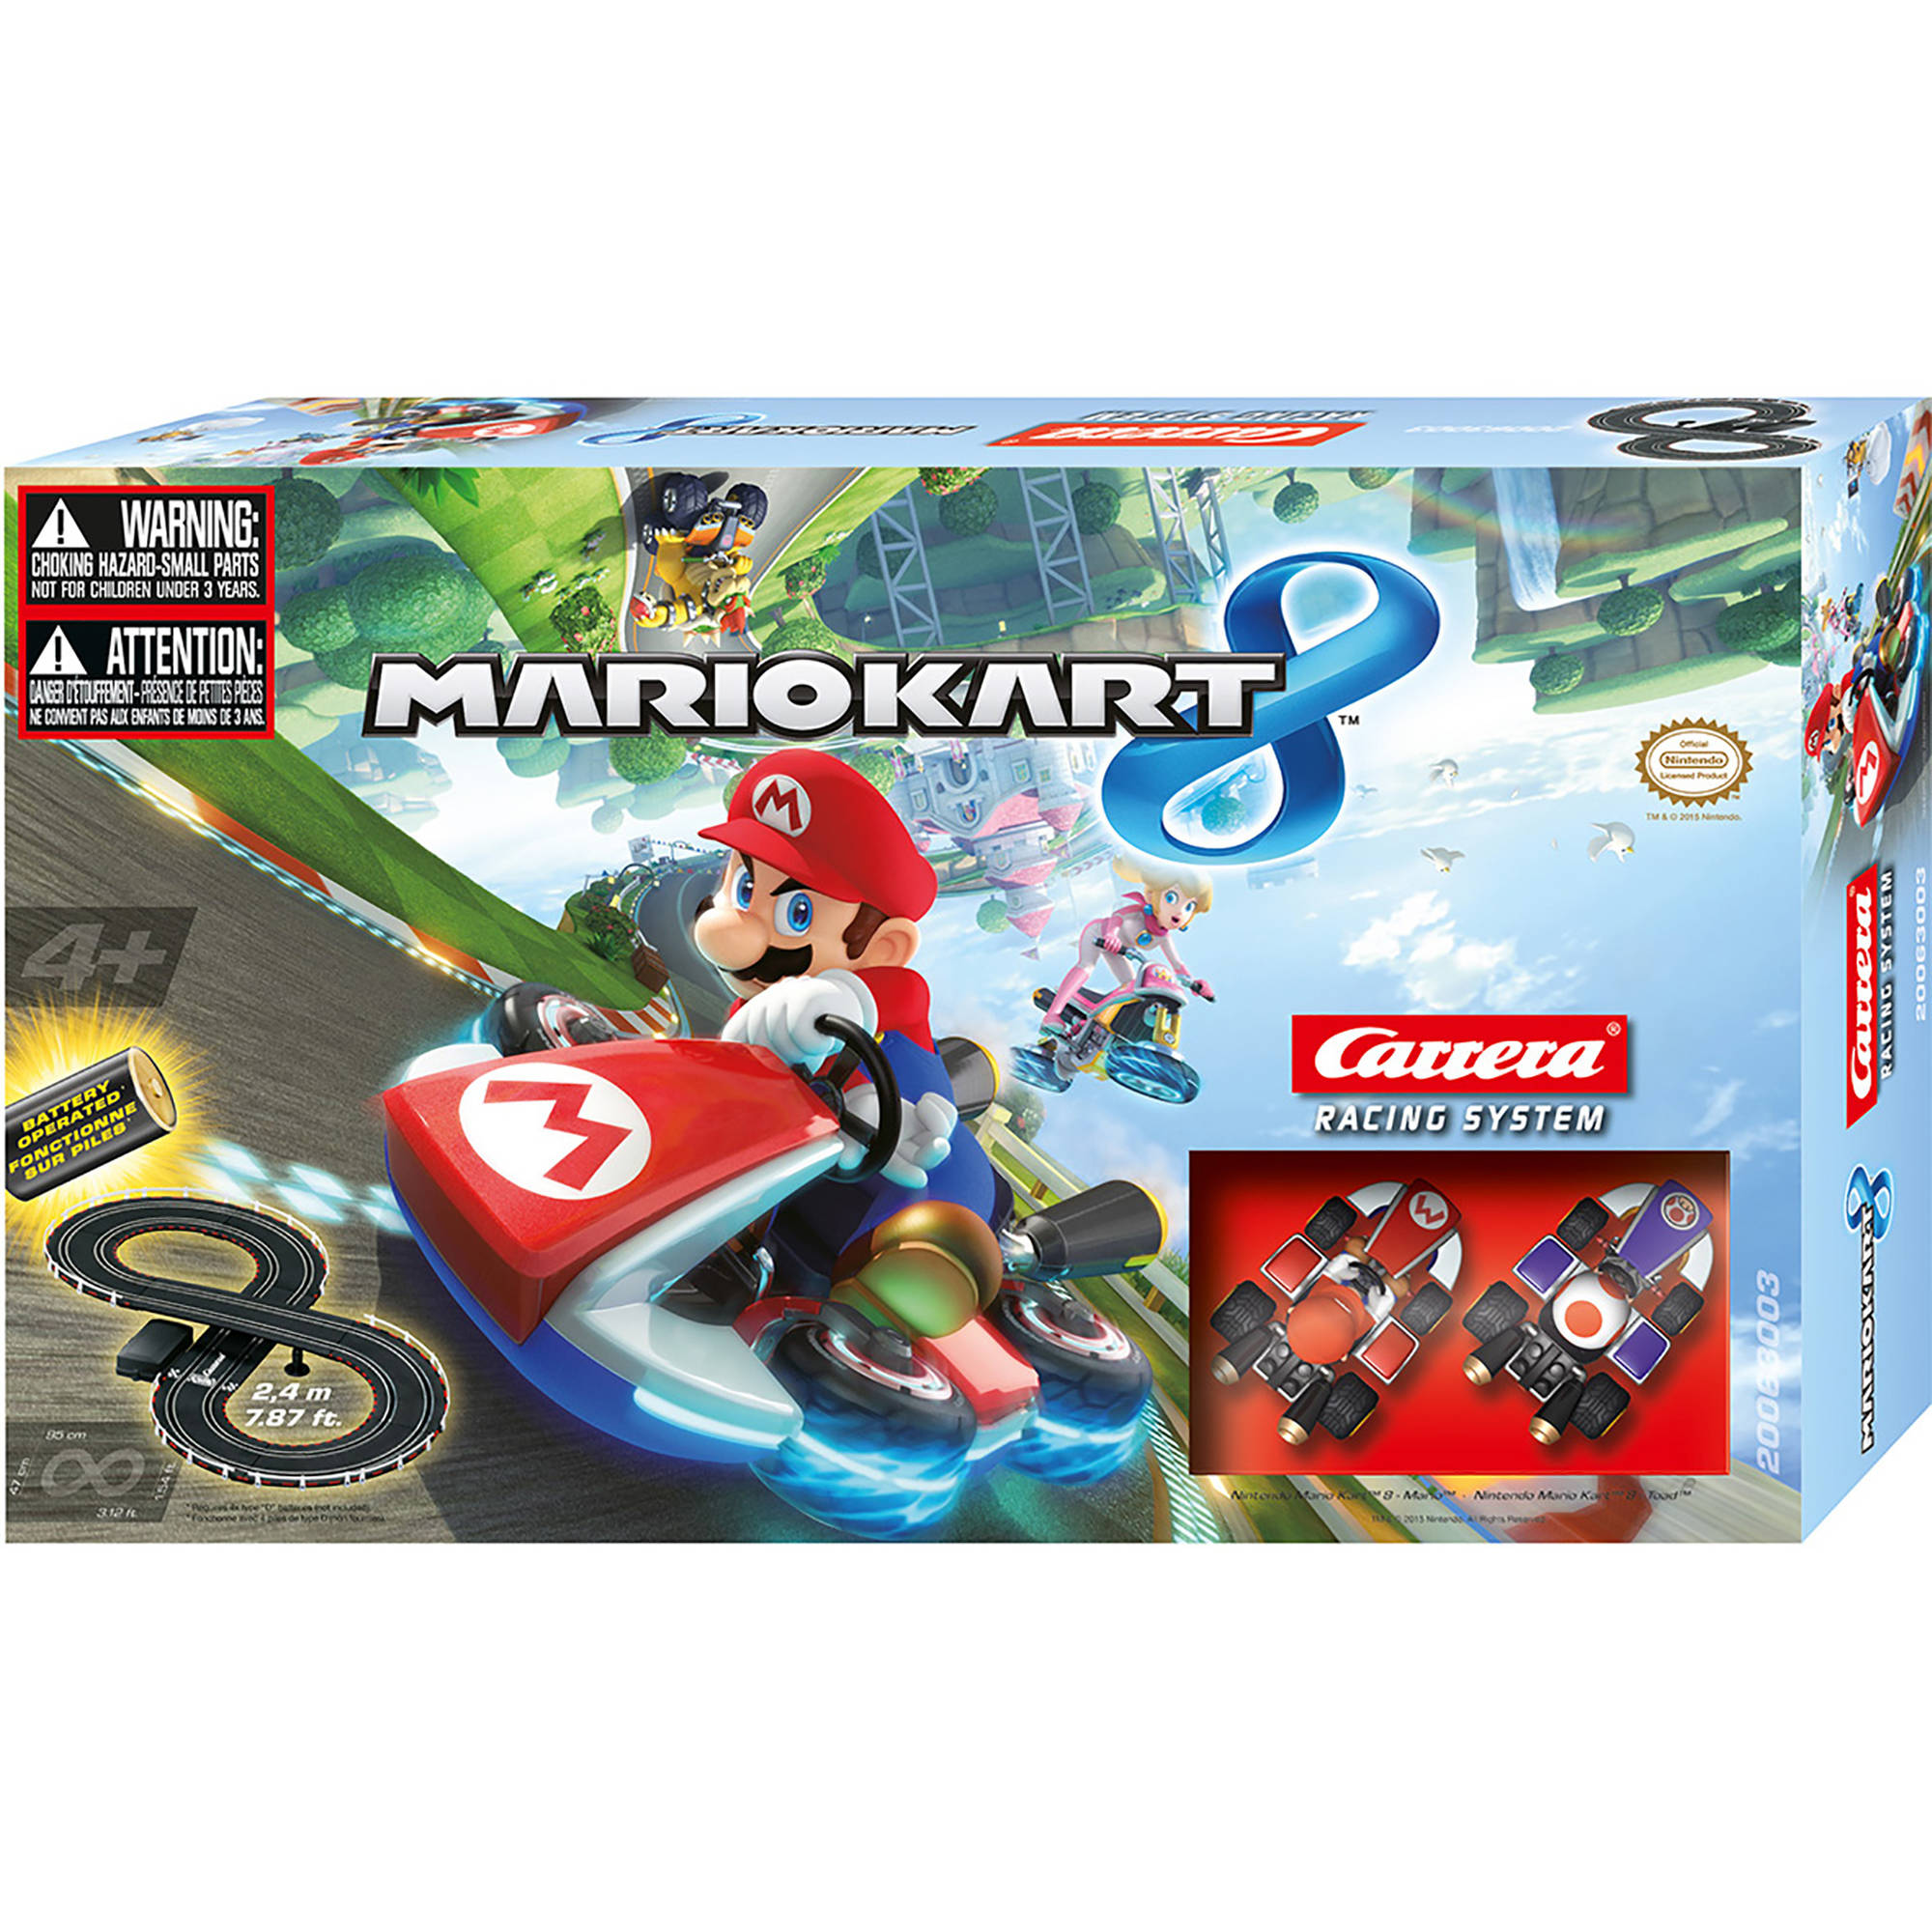 Mario Kart 8 Battery-Operated Road Race Set